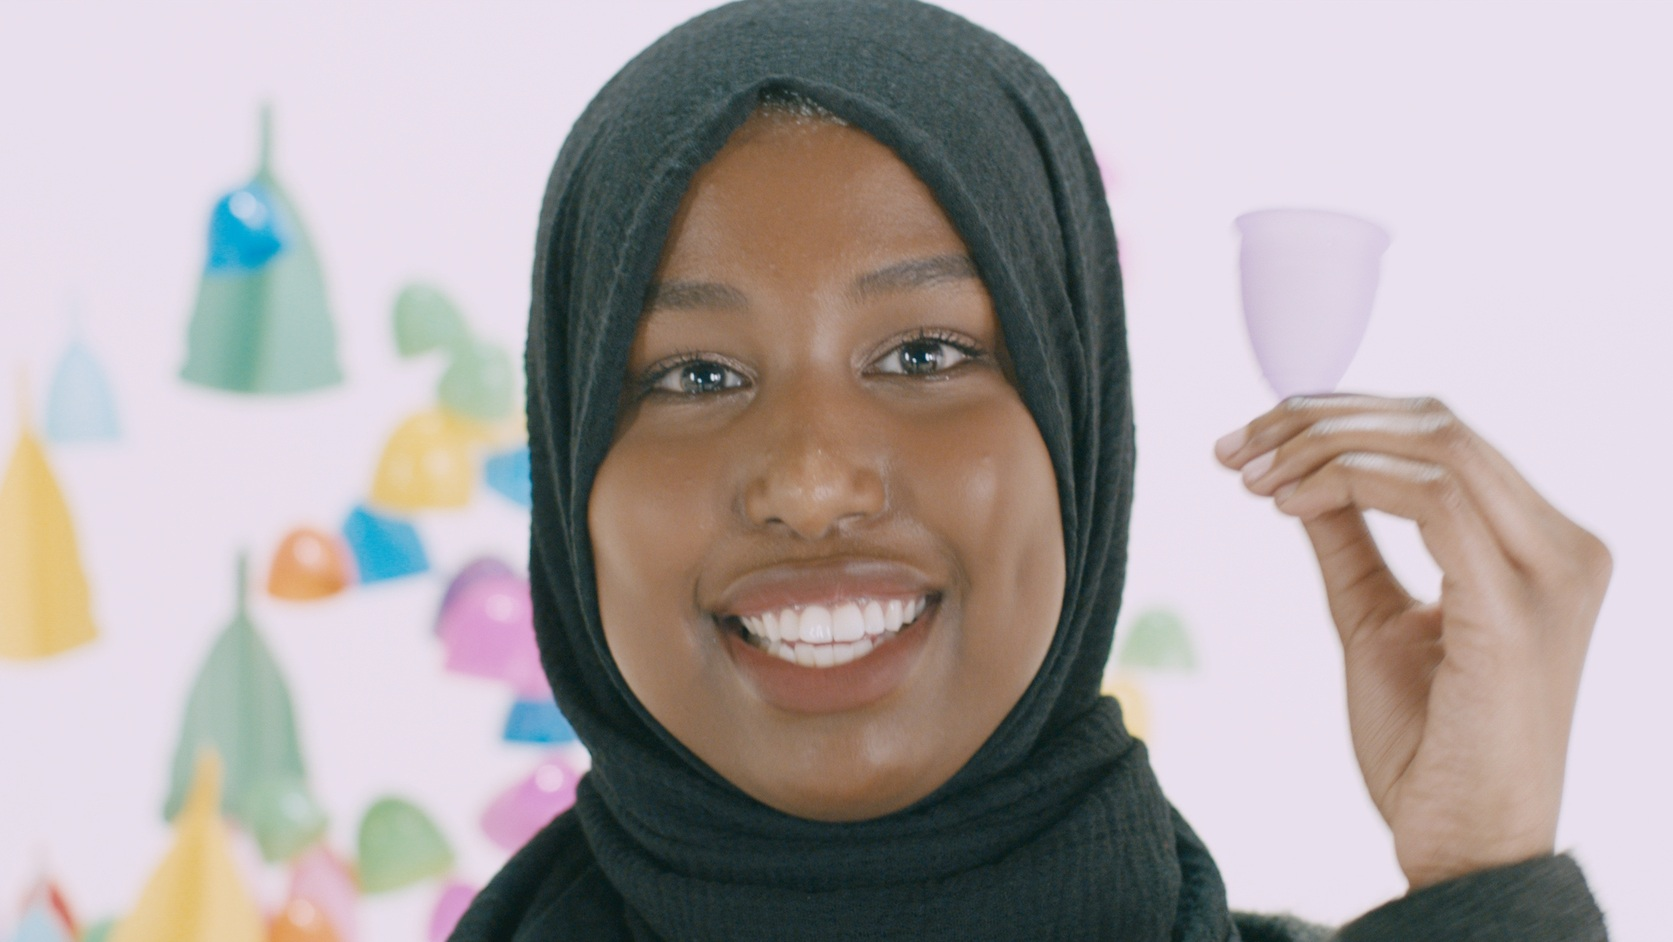 Where do I find one? - Buying a menstrual cup